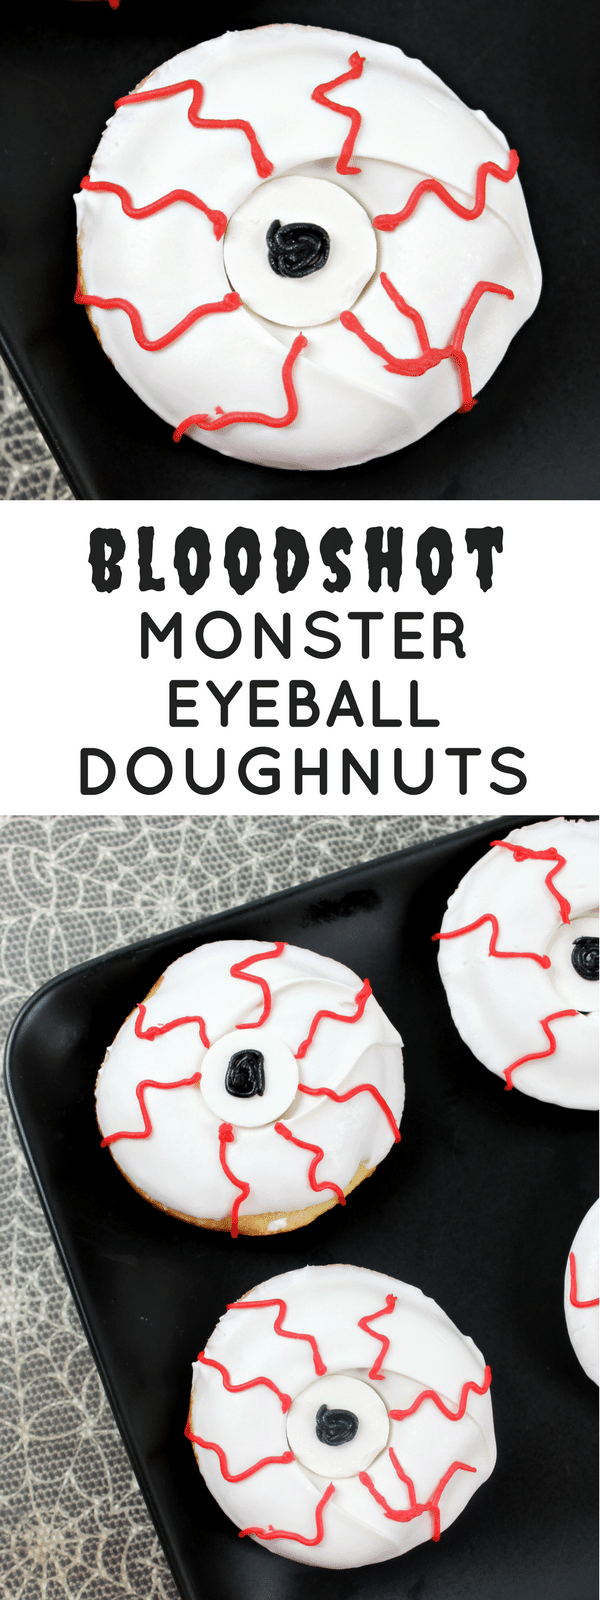 Bloodshot monster eyeball doughnuts make the perfect creepy Halloween dessert! Just mix, bake, and decorate and this spooky treat will be ready in no time!